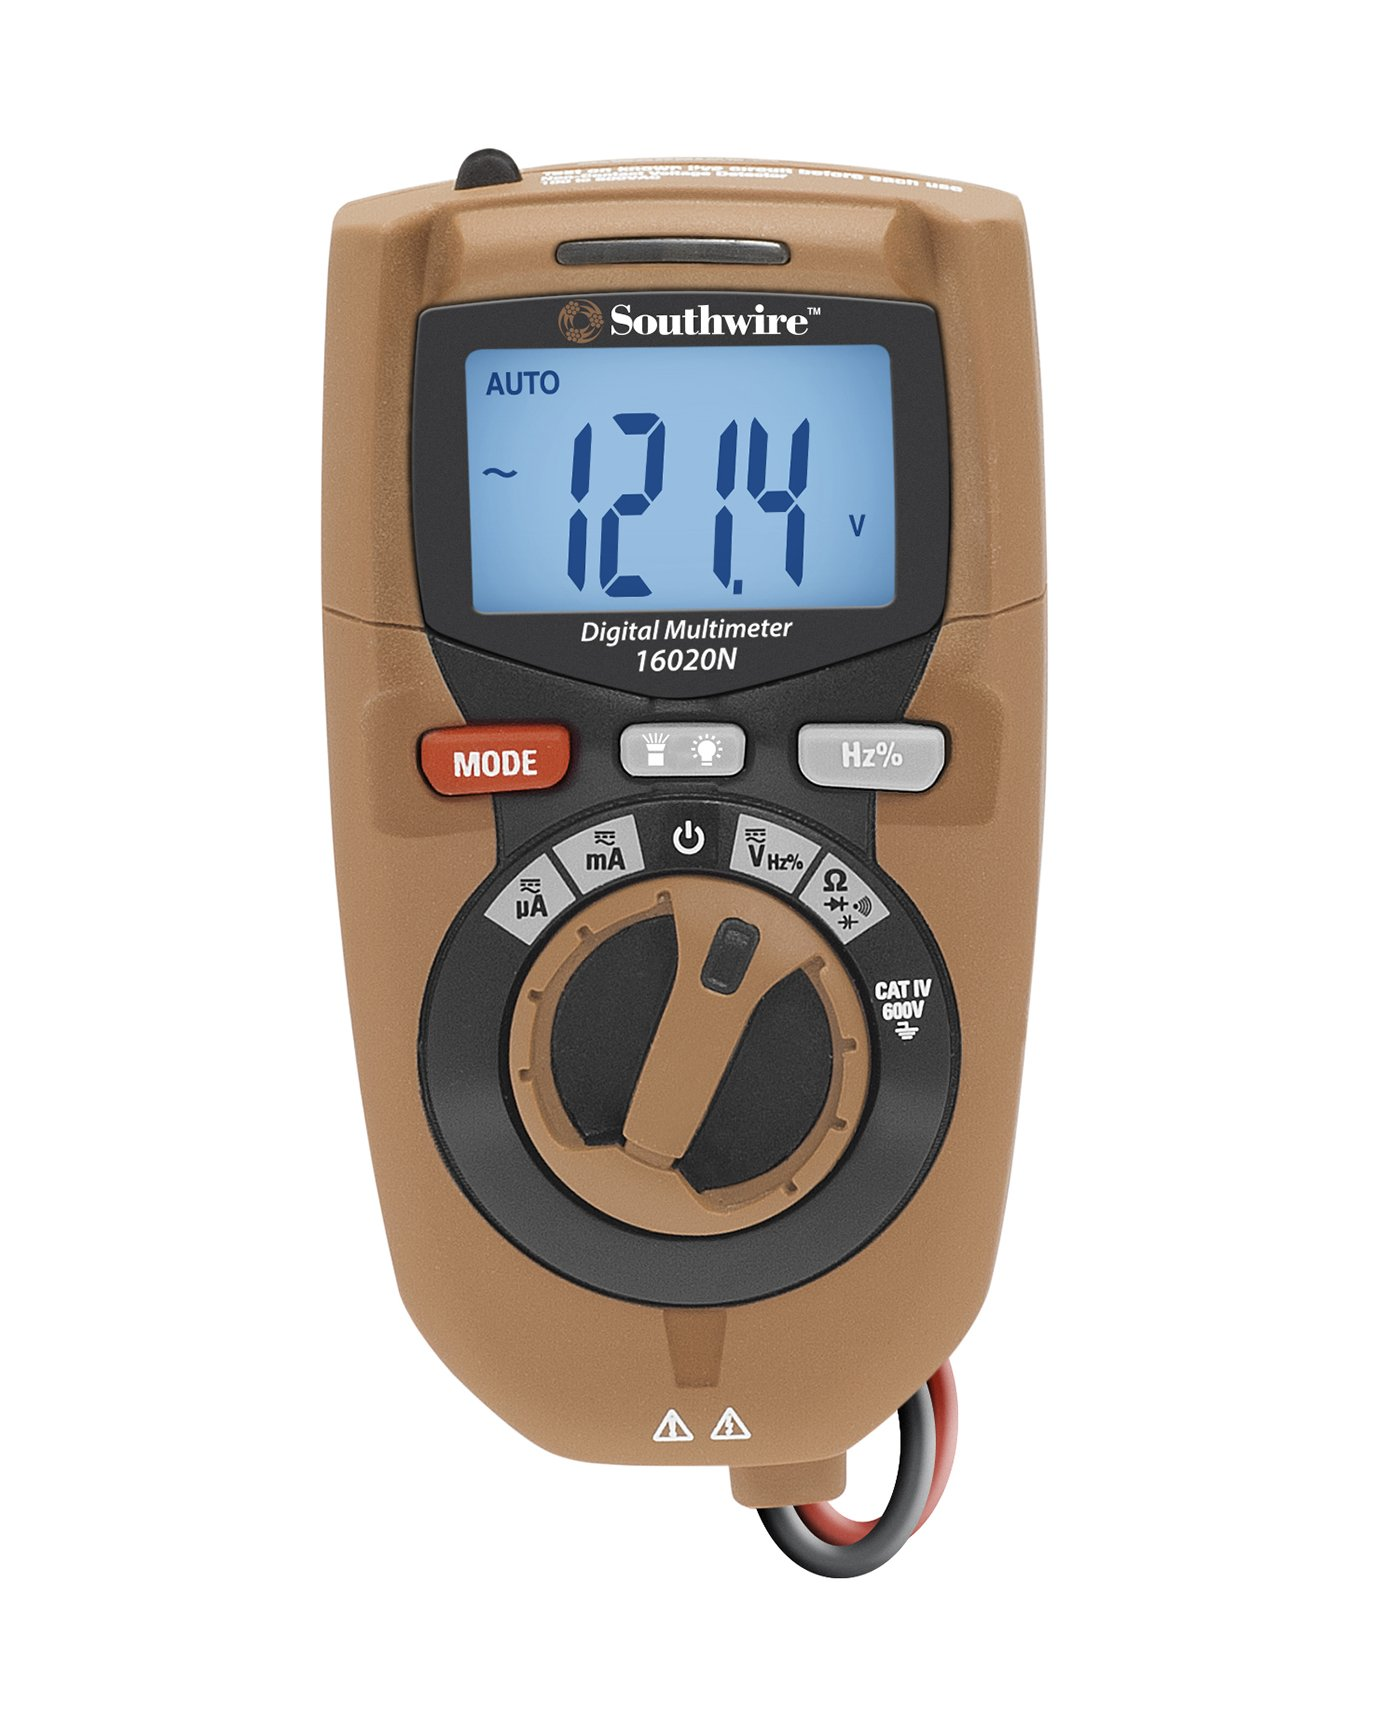 Southwire Tools & Equipment 16020N Compact 3-in-1 CAT IV Digital Multimeter